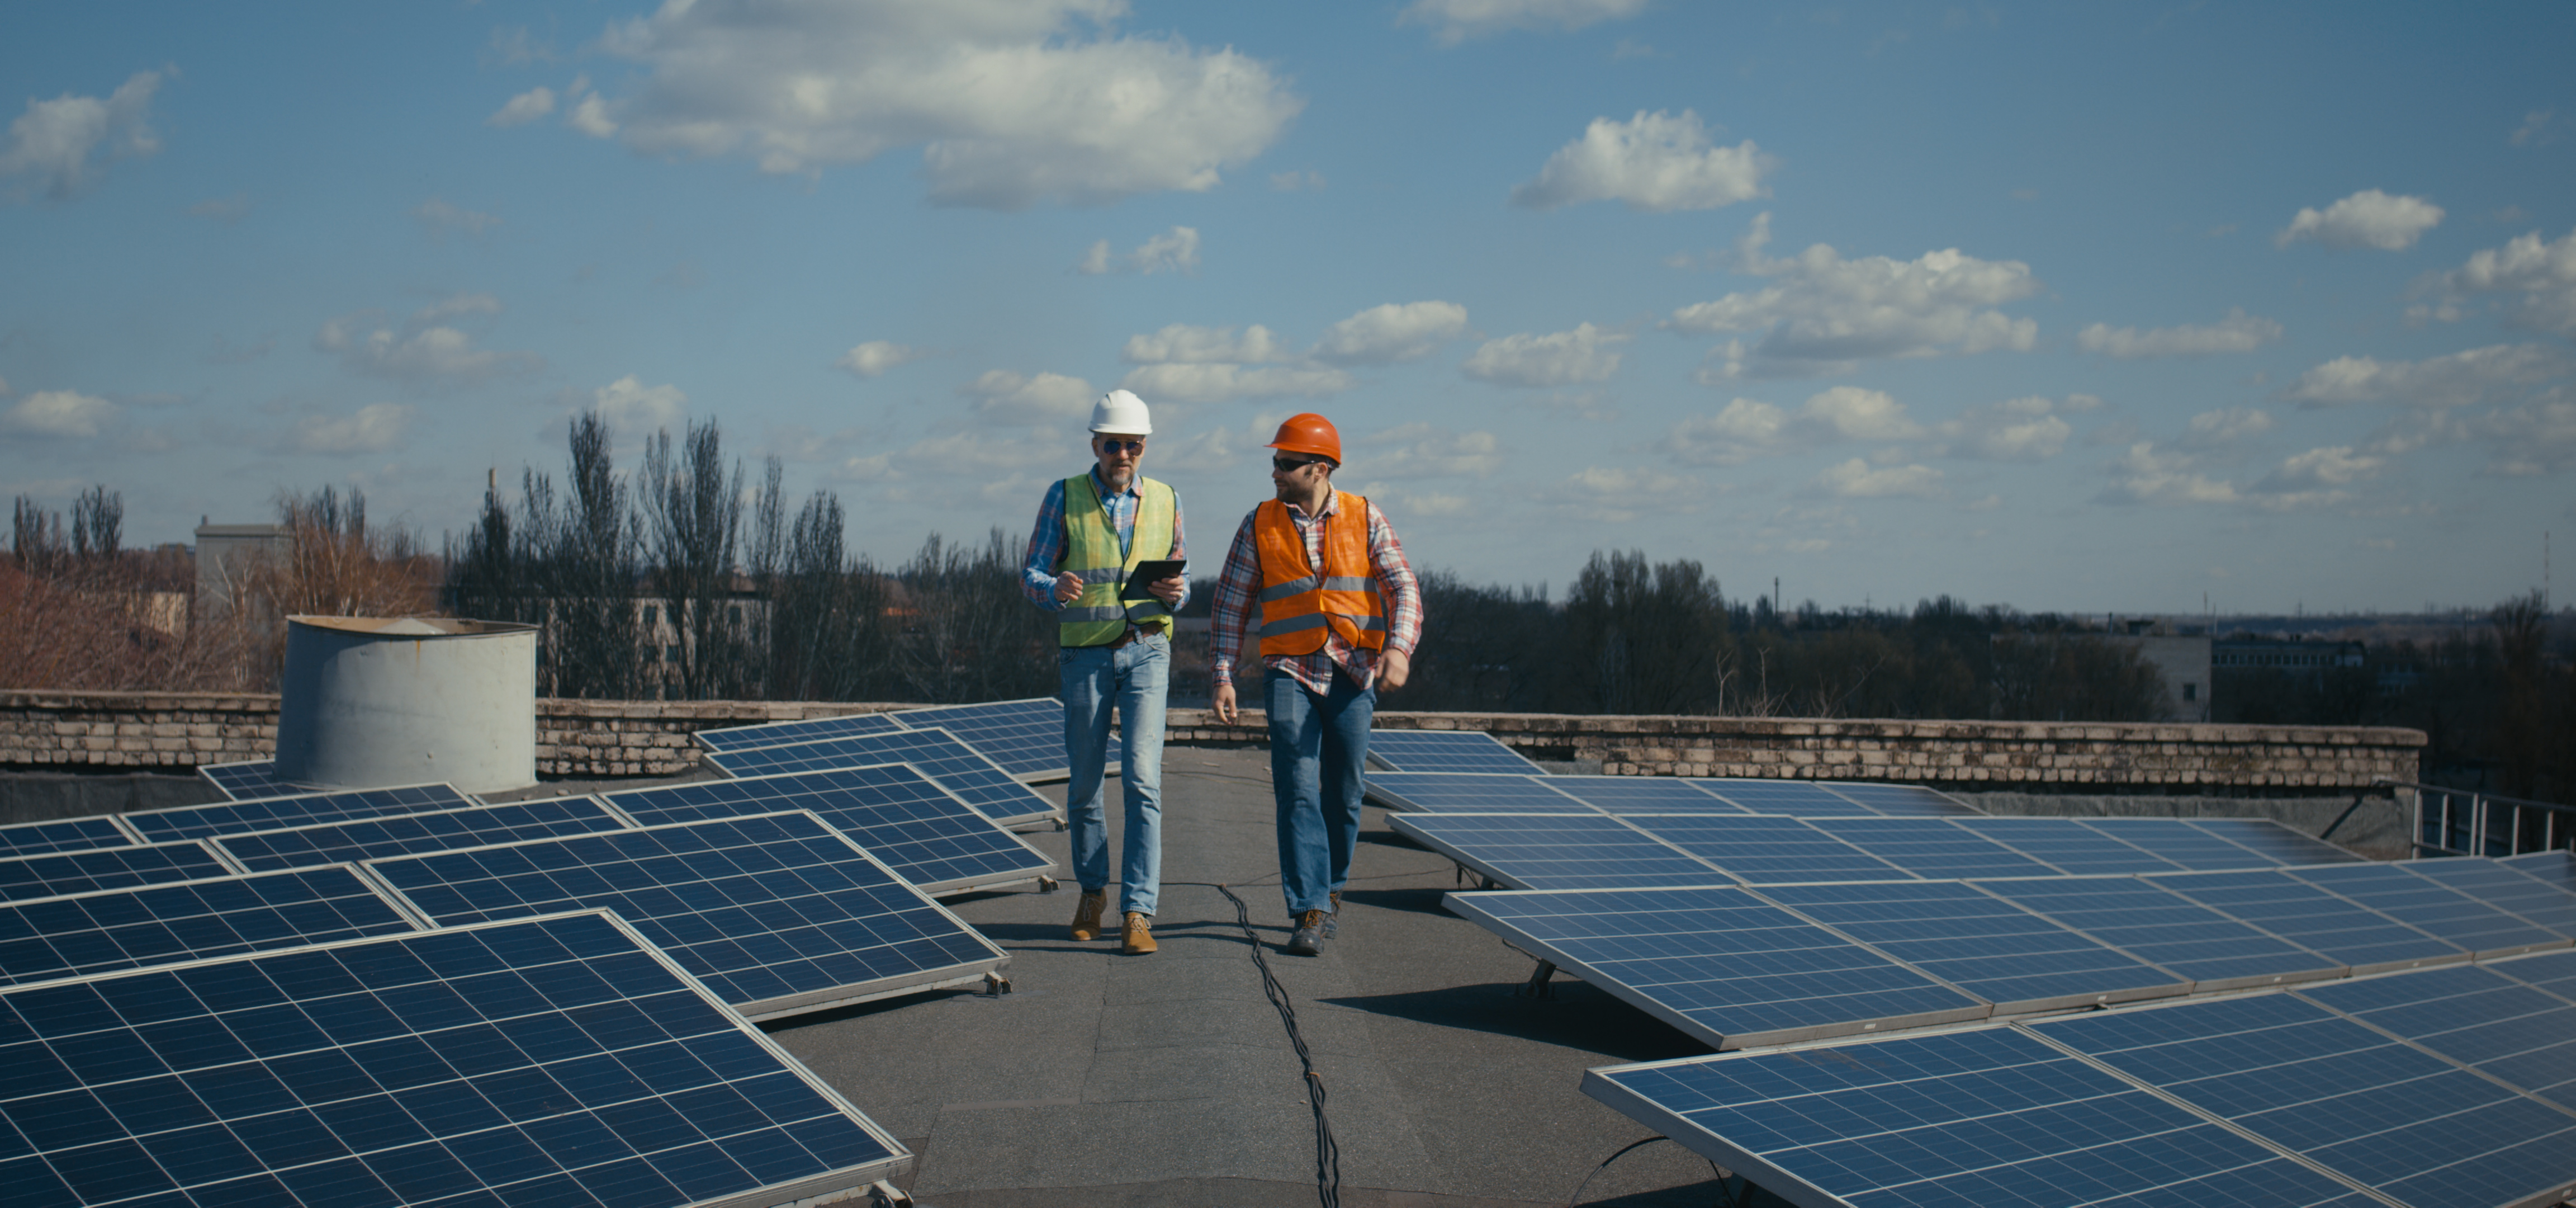 Flat Roof with Solar Panels being Surveyed by a Surveyor and Estimator